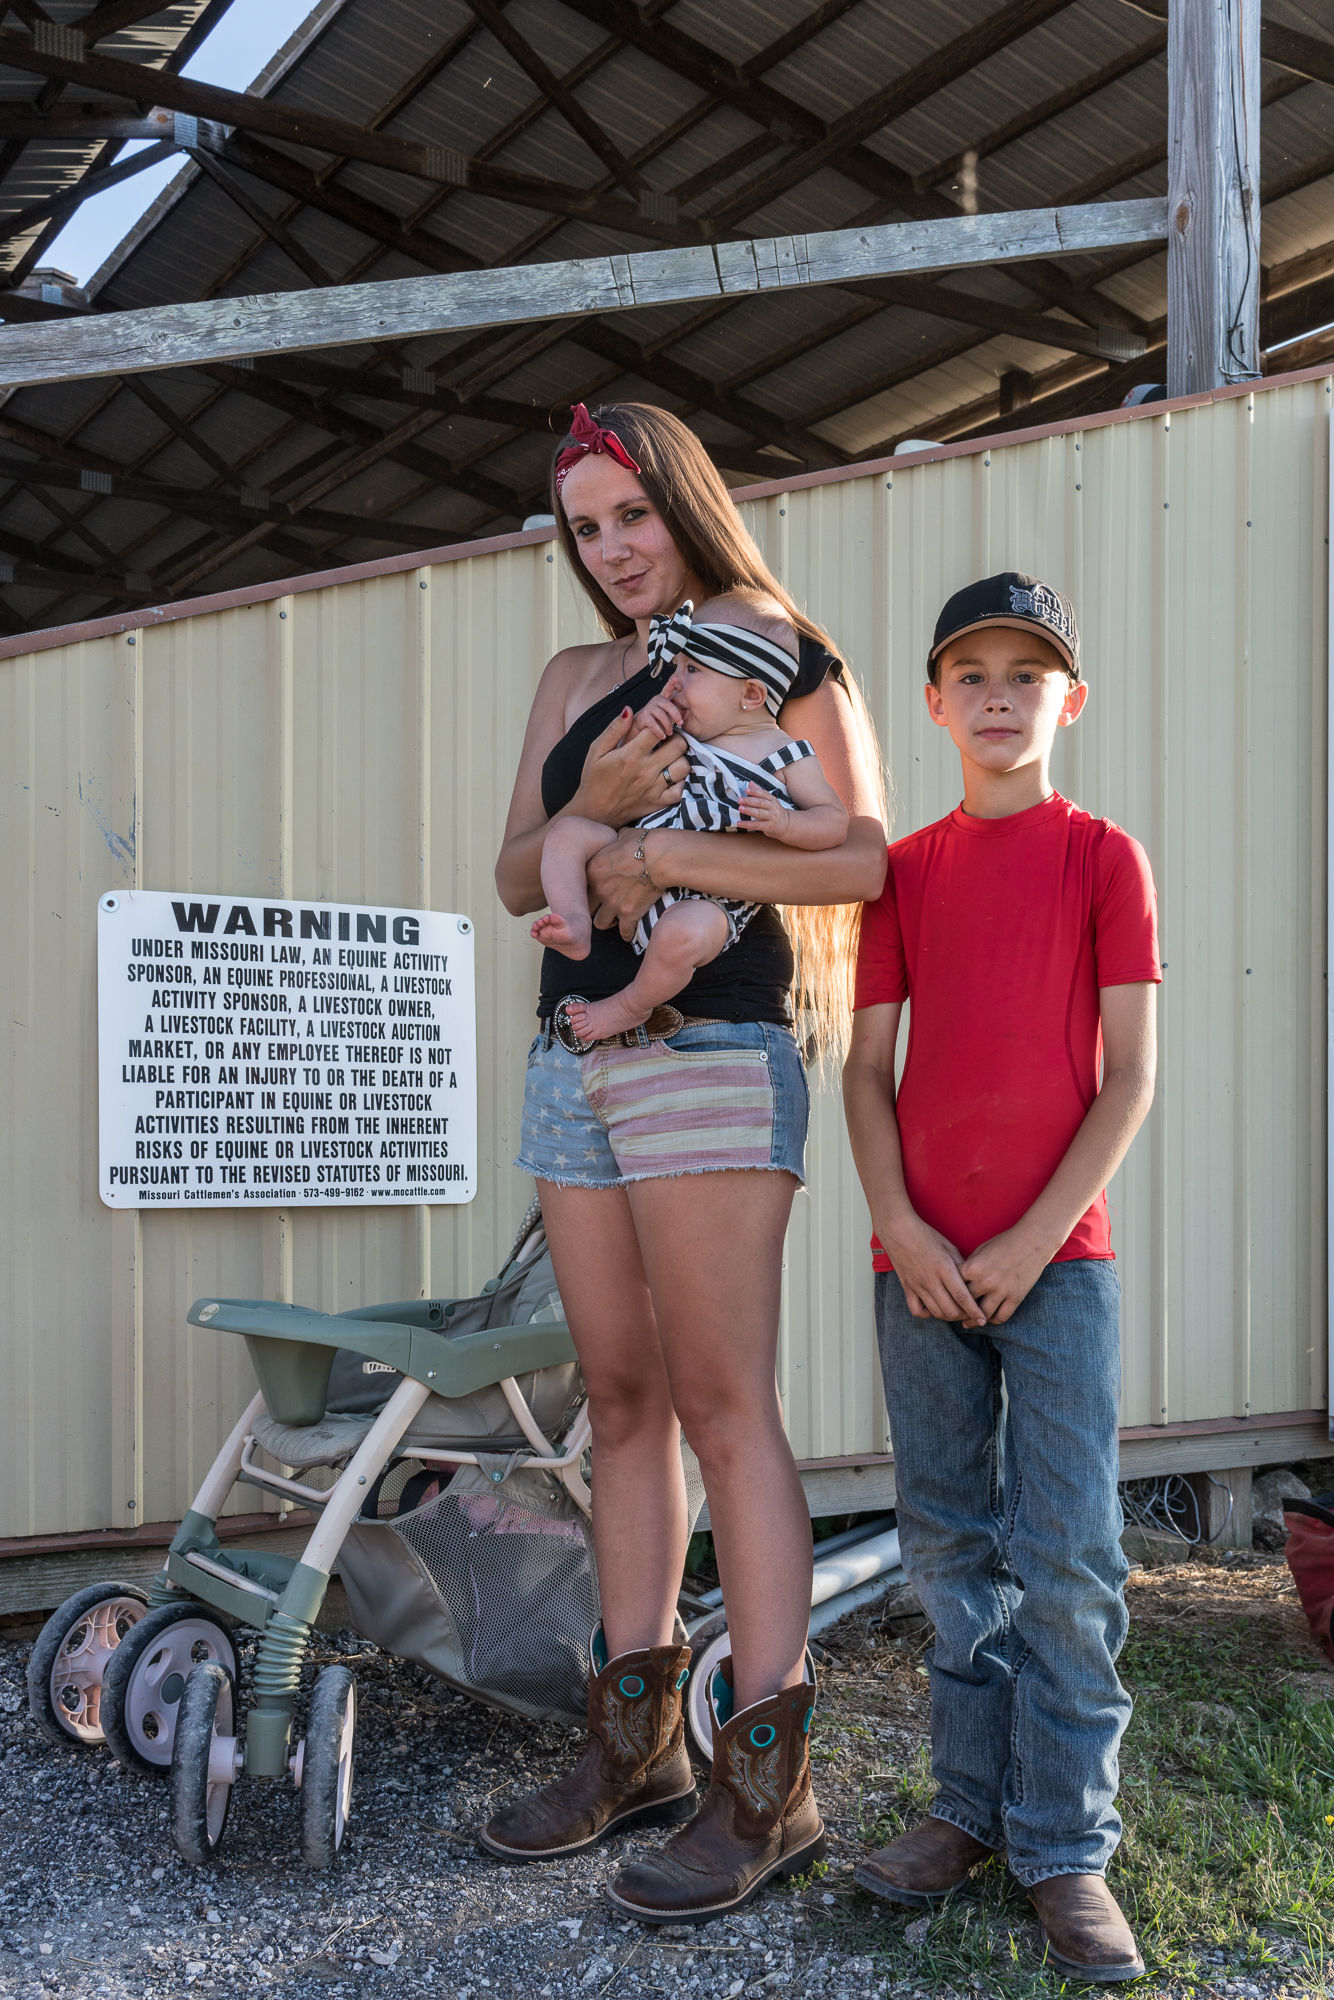 Nykie, Juliette, and Connor at the Jefferson County Fair, Hillsb